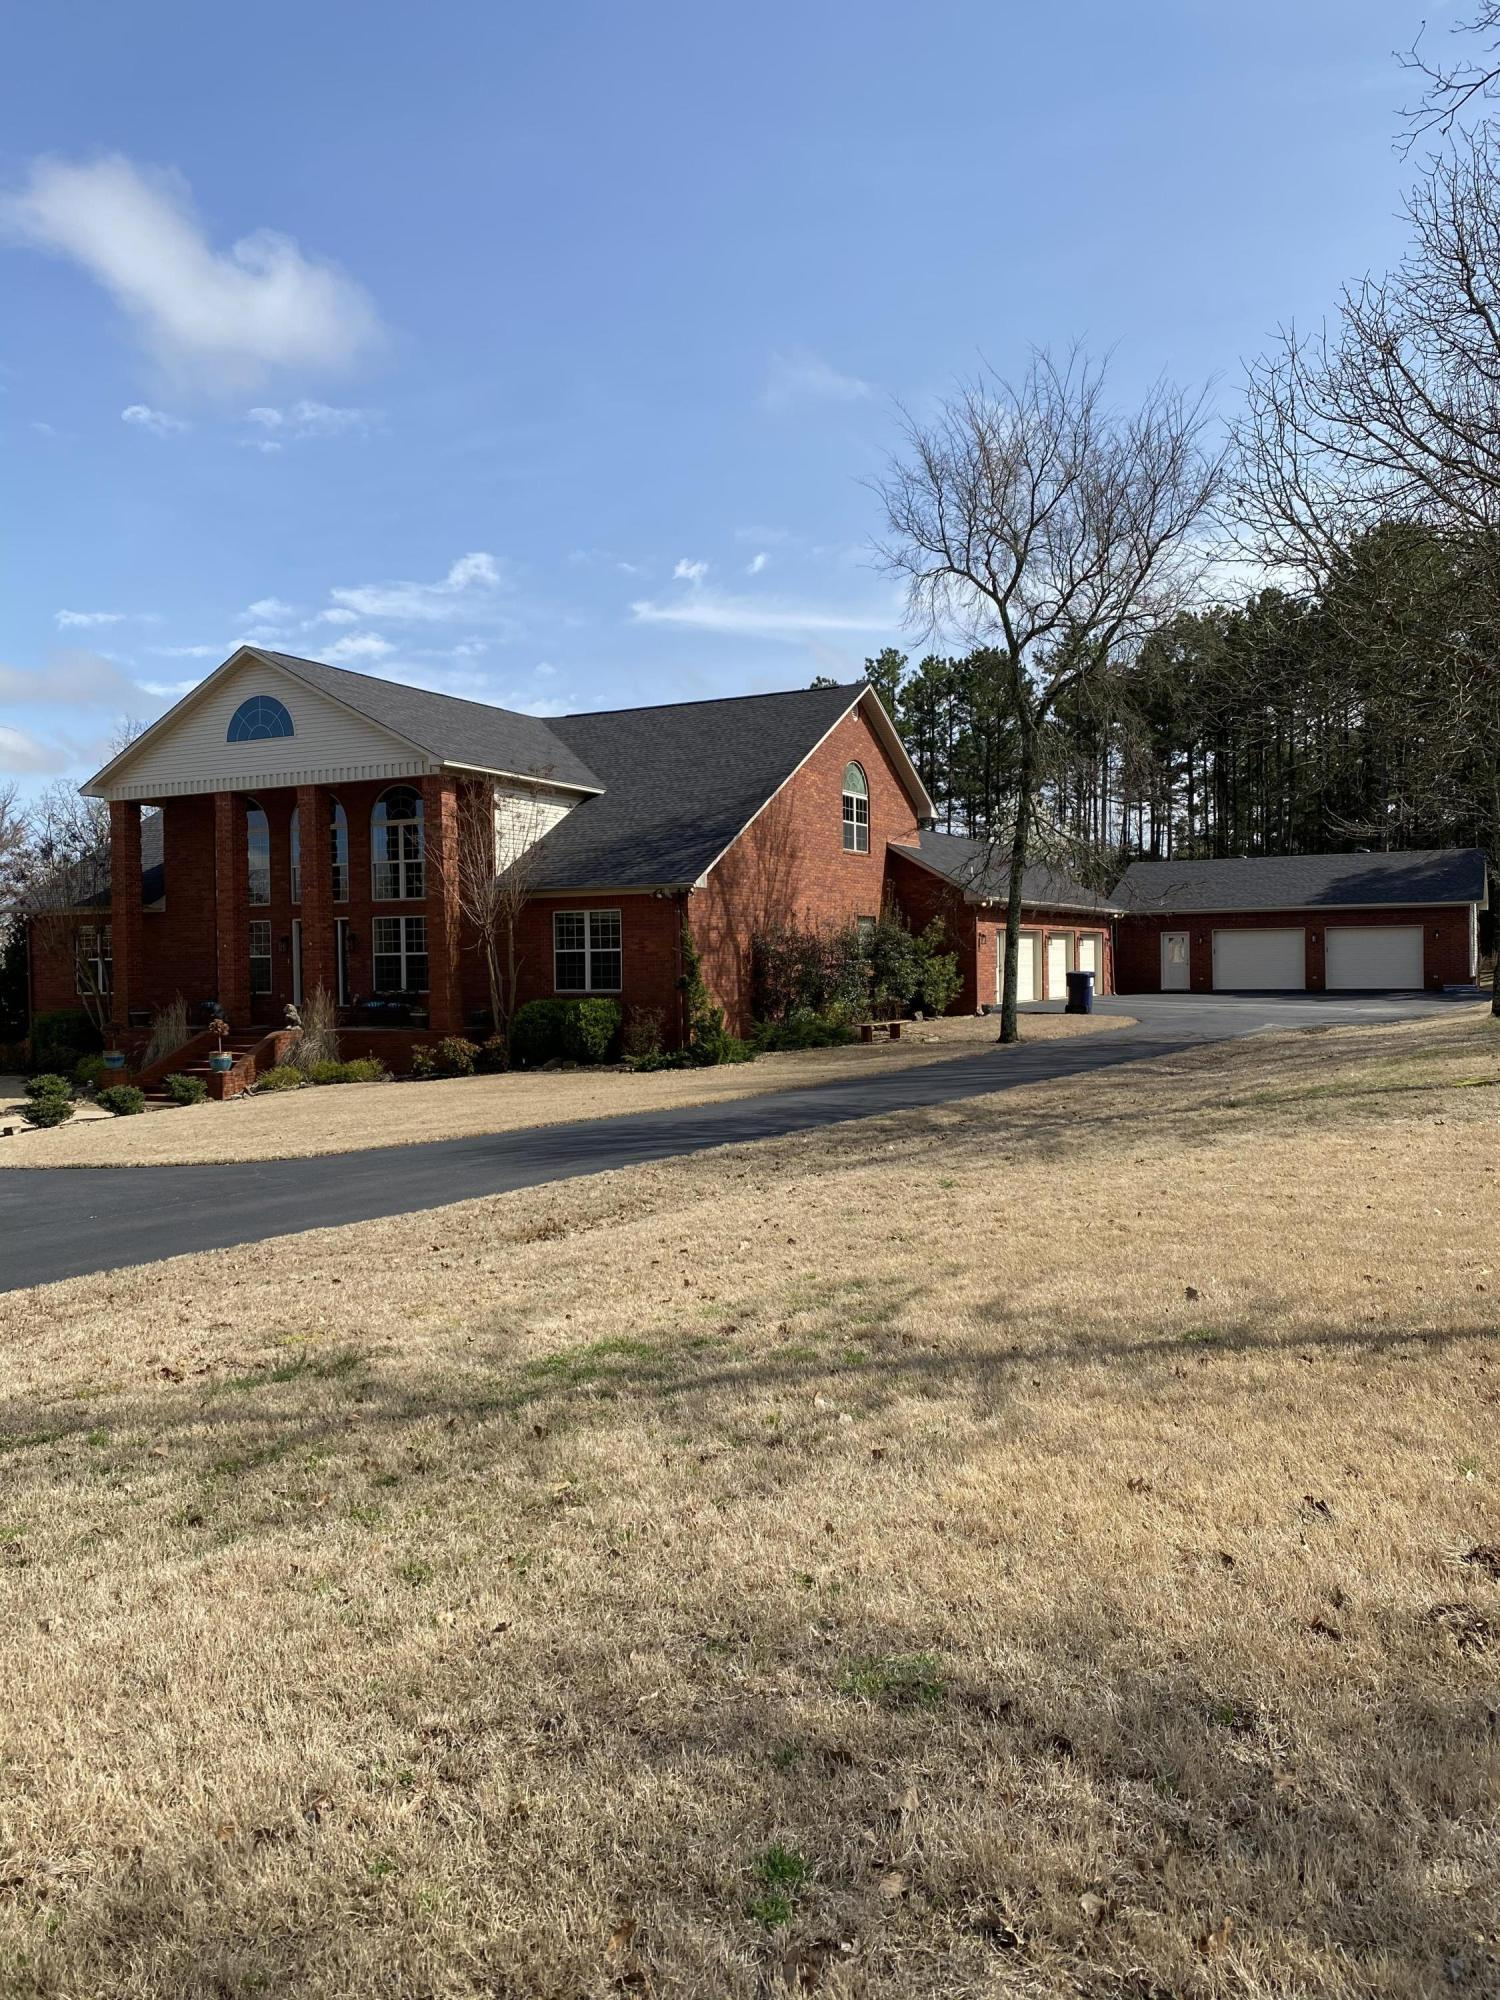 Large photo 3 of home for sale at 973 Becky Boulevard, Russellville, AR